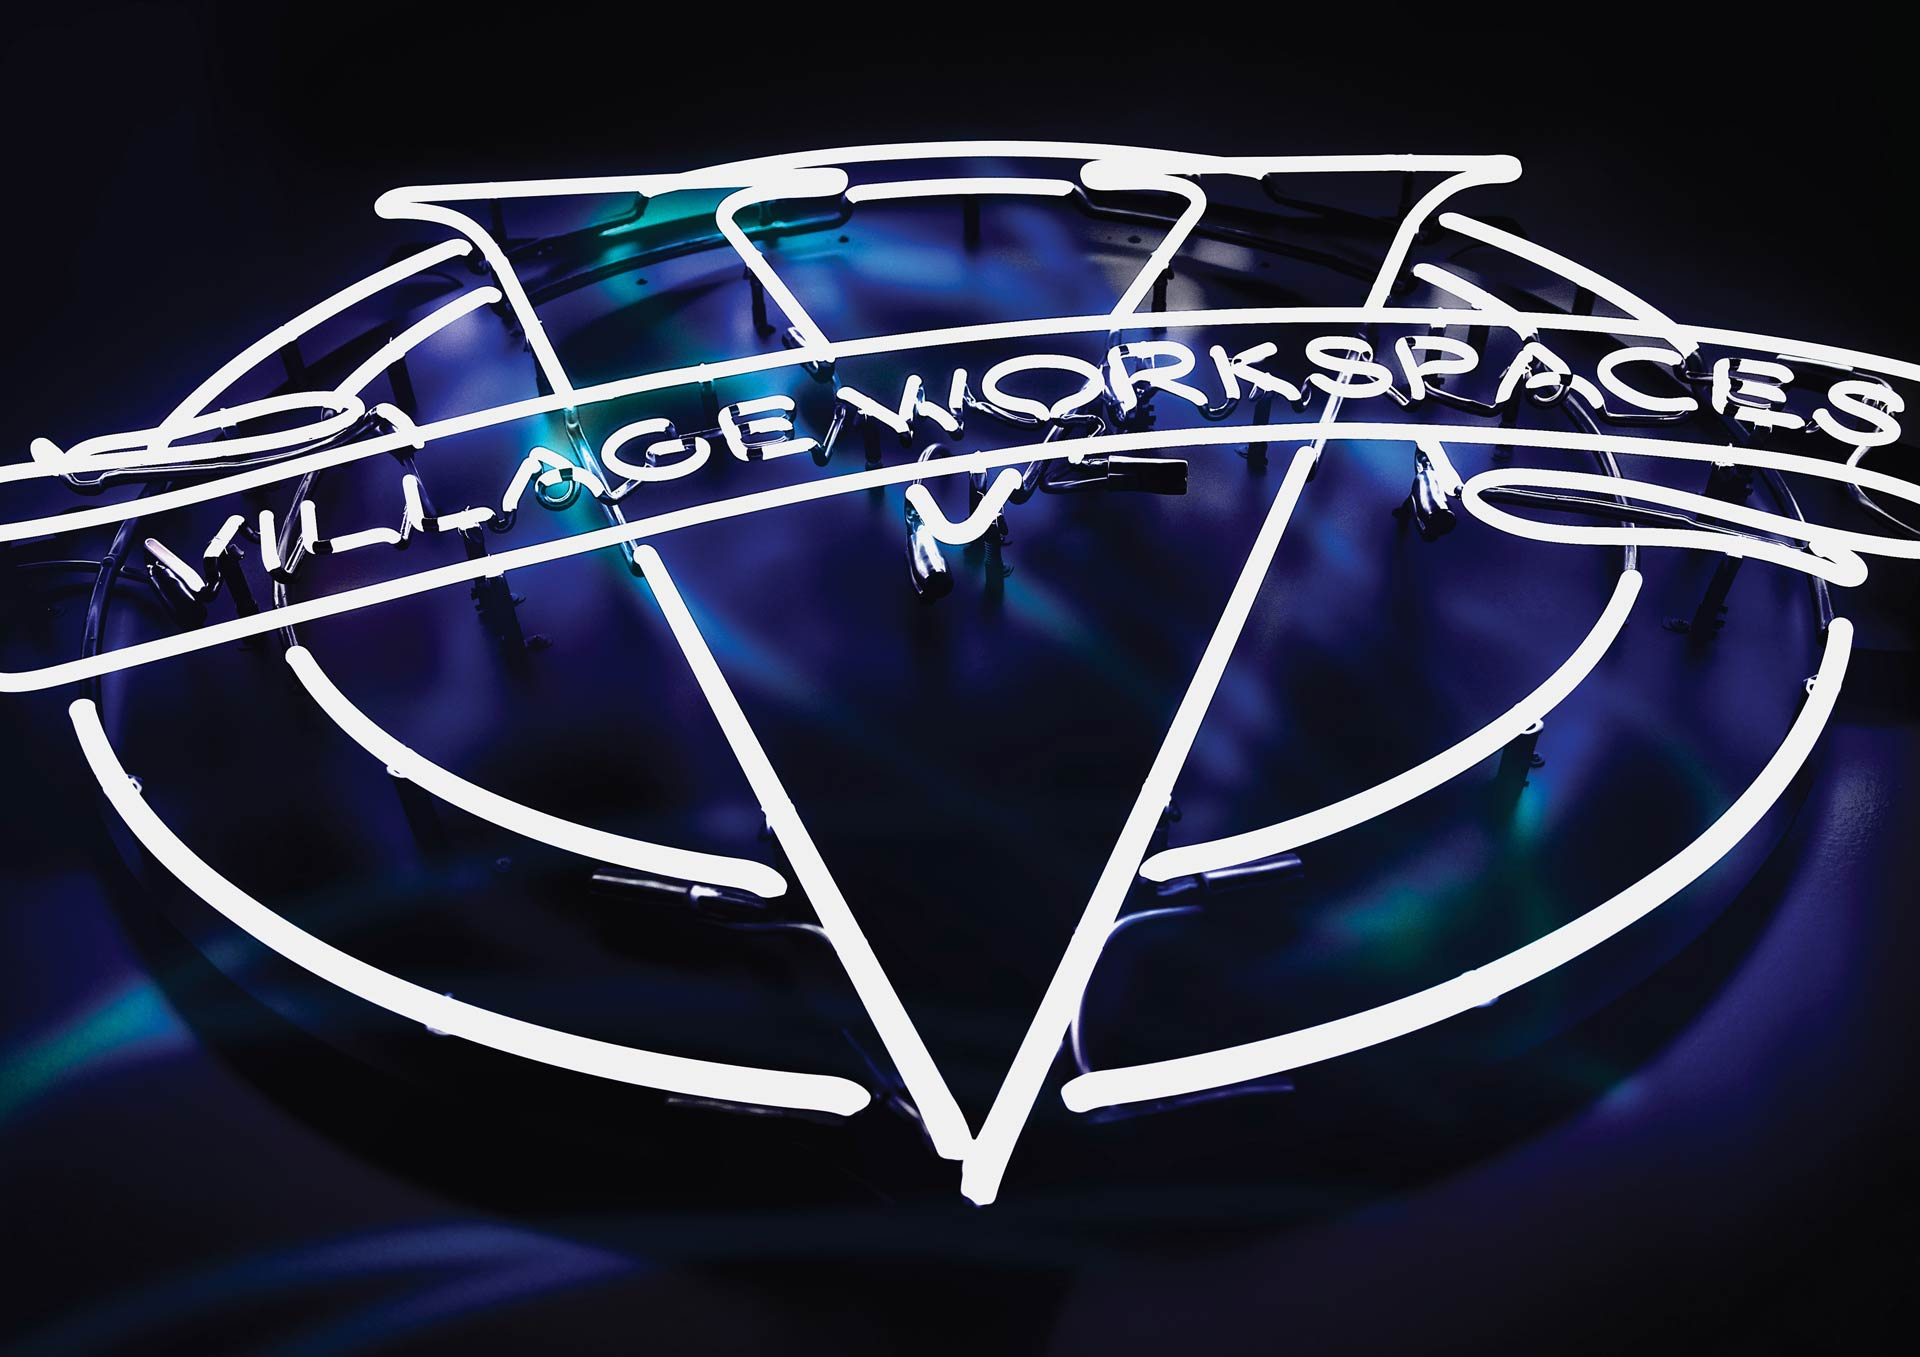 village-workspaces-logo-neon